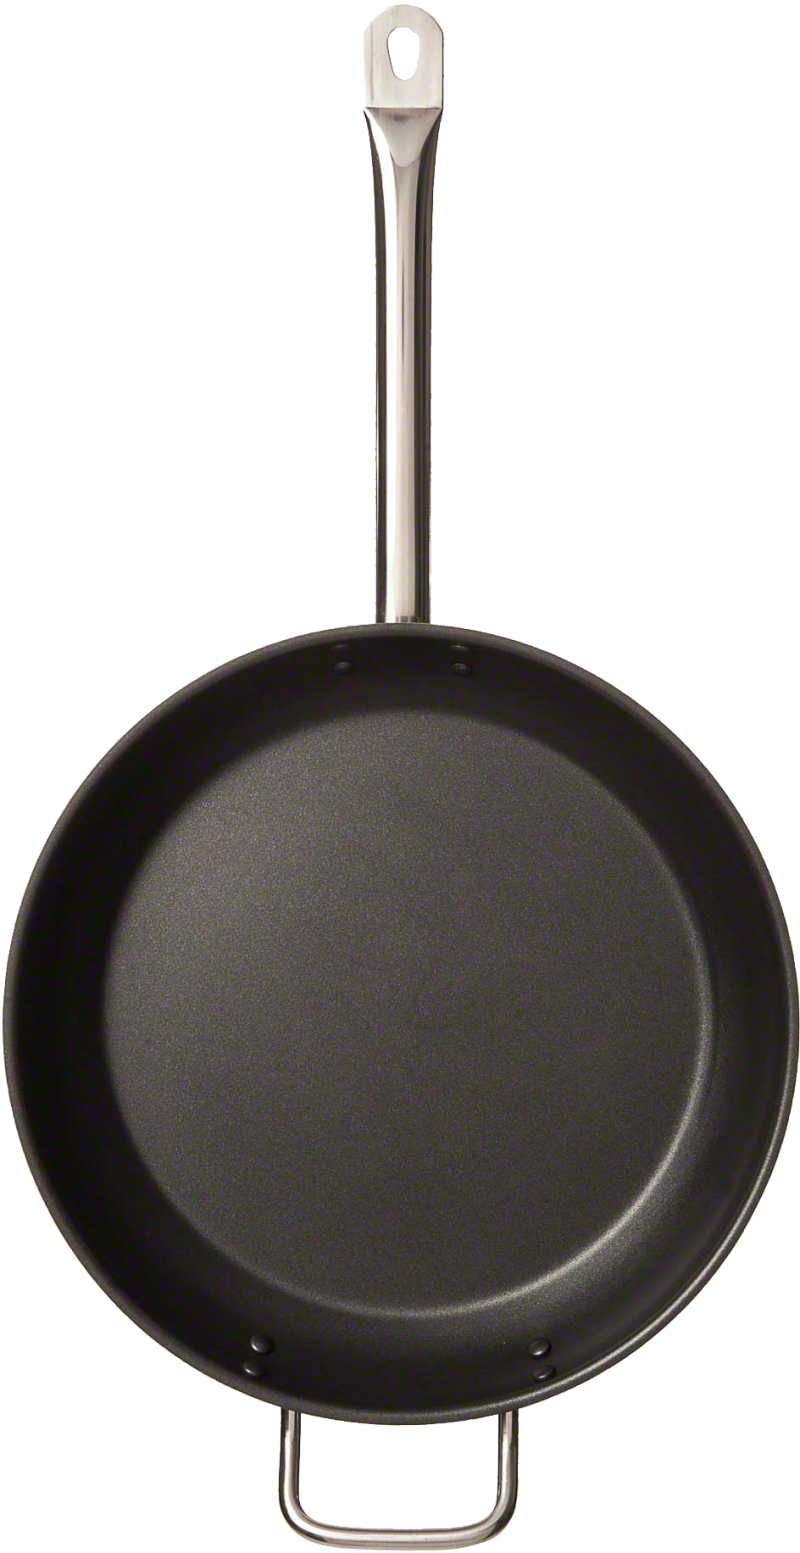 Frying pan top down PNG Image